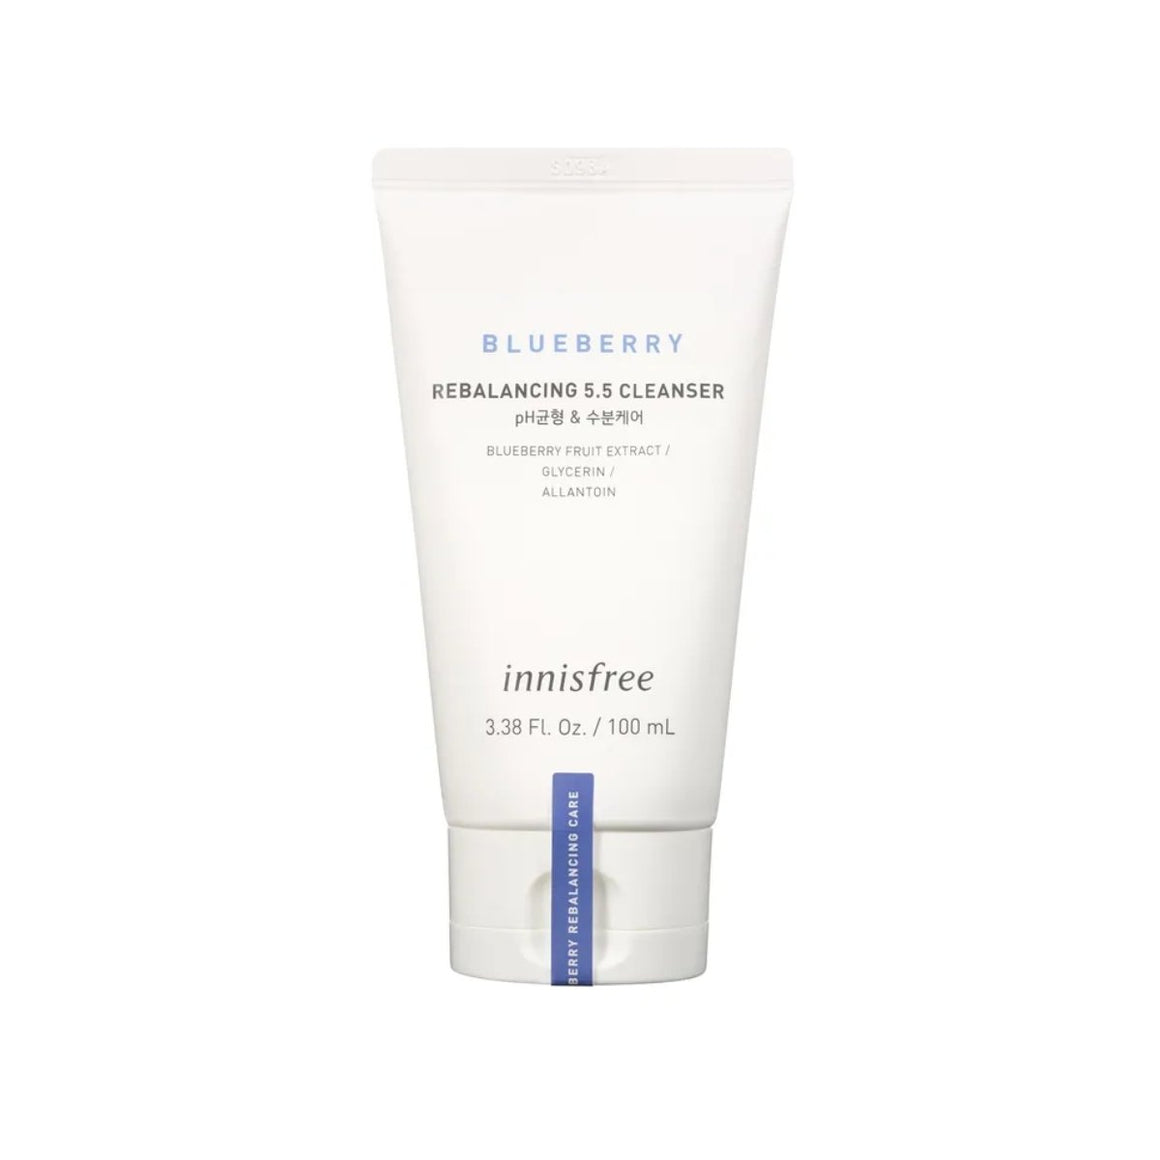 Innisfree Blueberry Rebalancing 5.5 Cleanser 100 ml